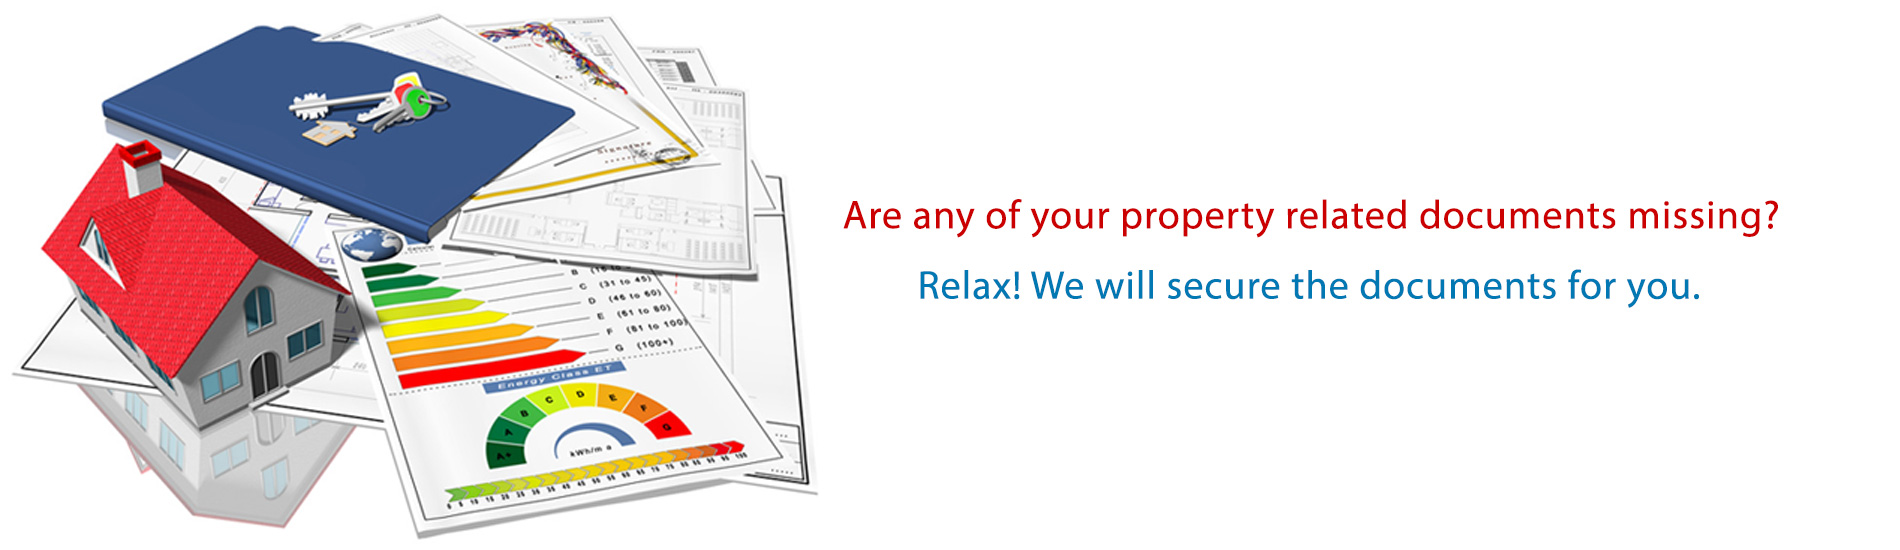 Missing Property Documents